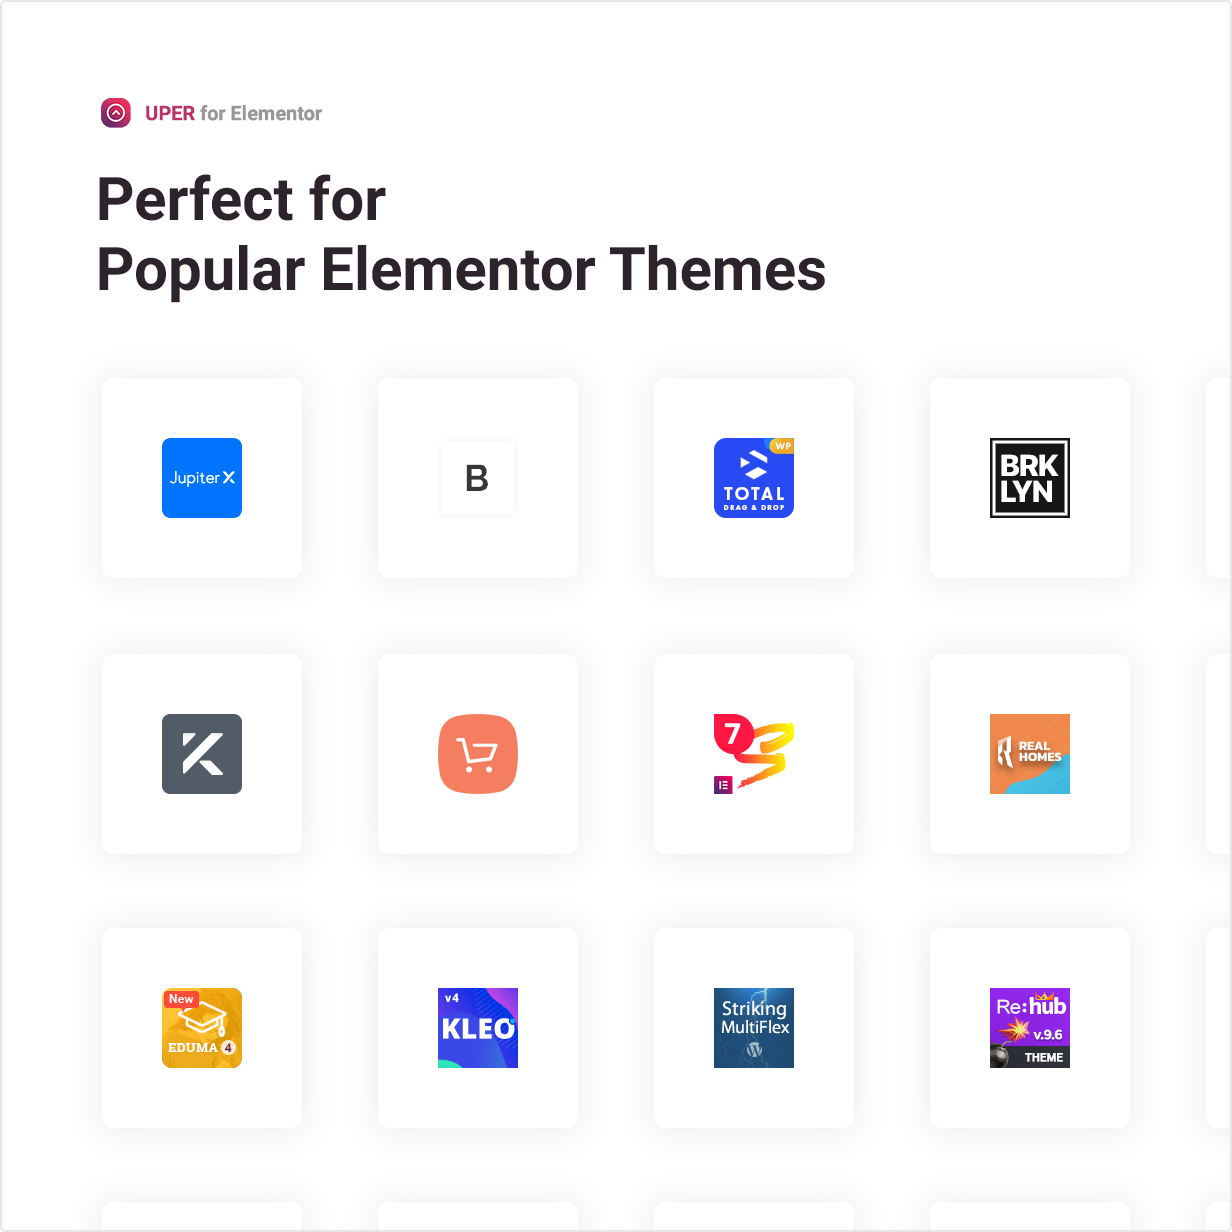 Perfect for Popular Elementor Themes